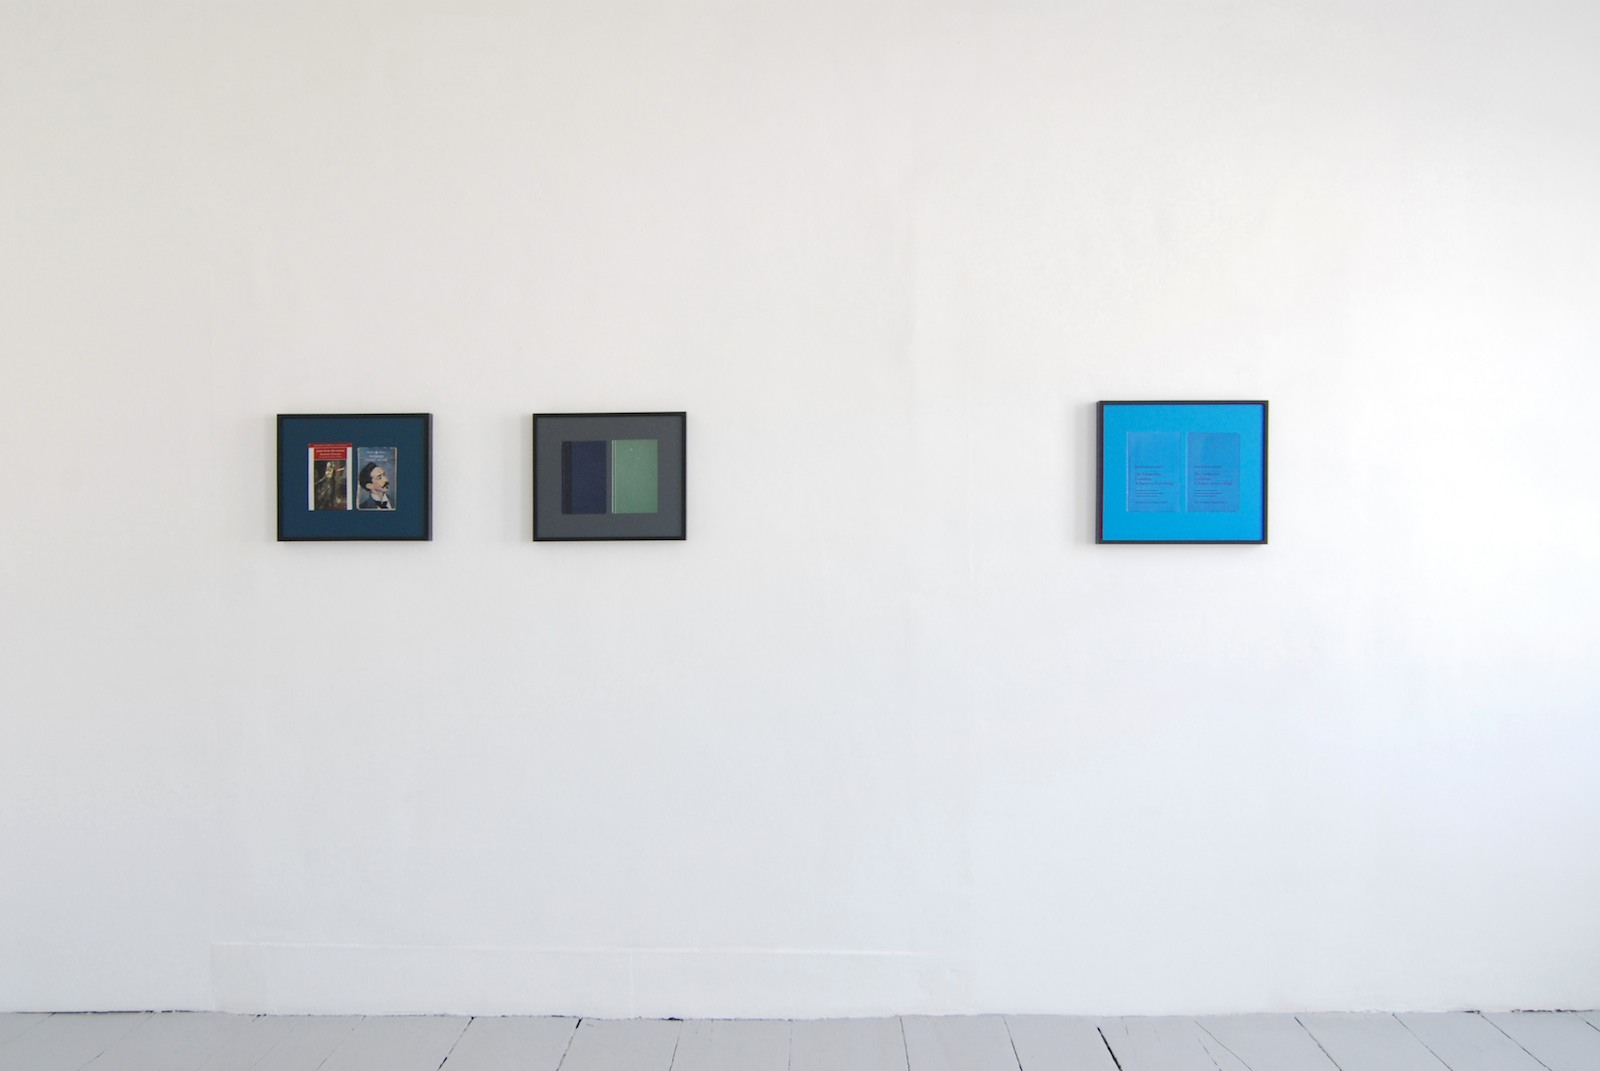 Installation view, Books (the series is informally referred to as Books and each photograph has its own distinct title. See captions), 2006, digital c-print in artist's frame, dimensions variable for each work, edition of 3